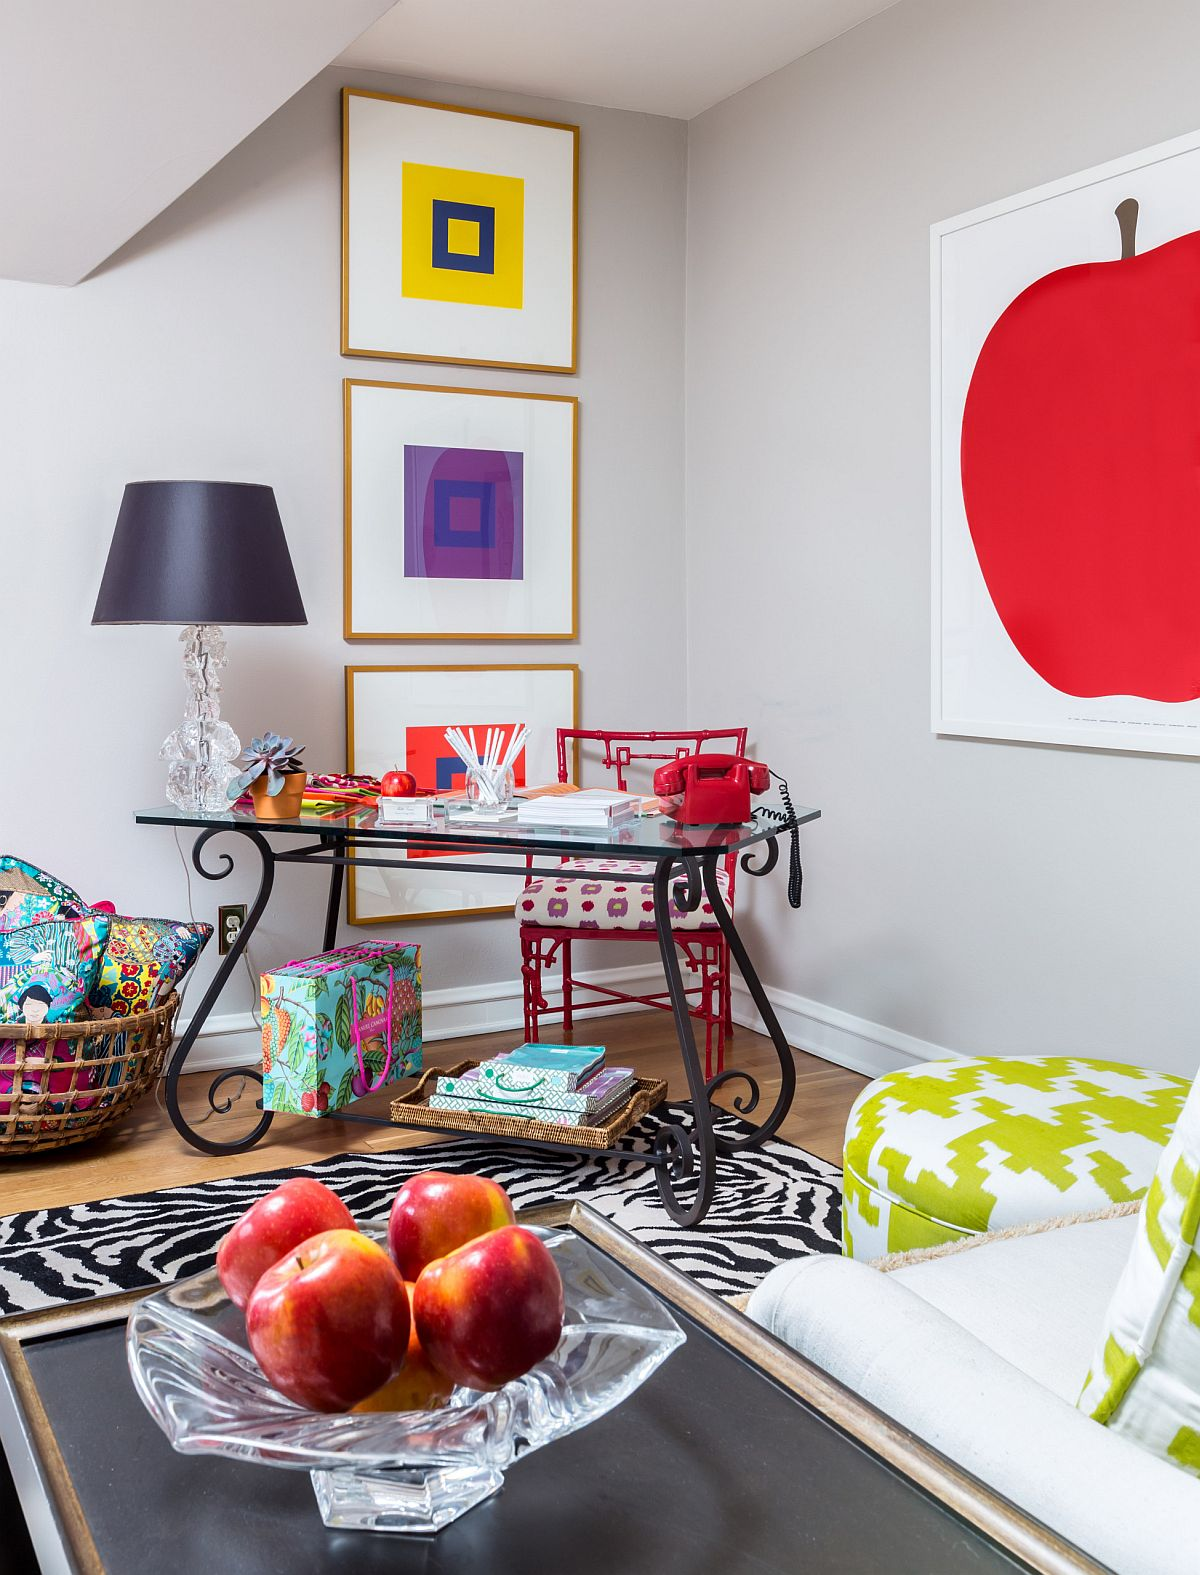 Brilliant-array-of-colors-define-this-gorgeous-eclectic-workspace-in-the-corner-33831